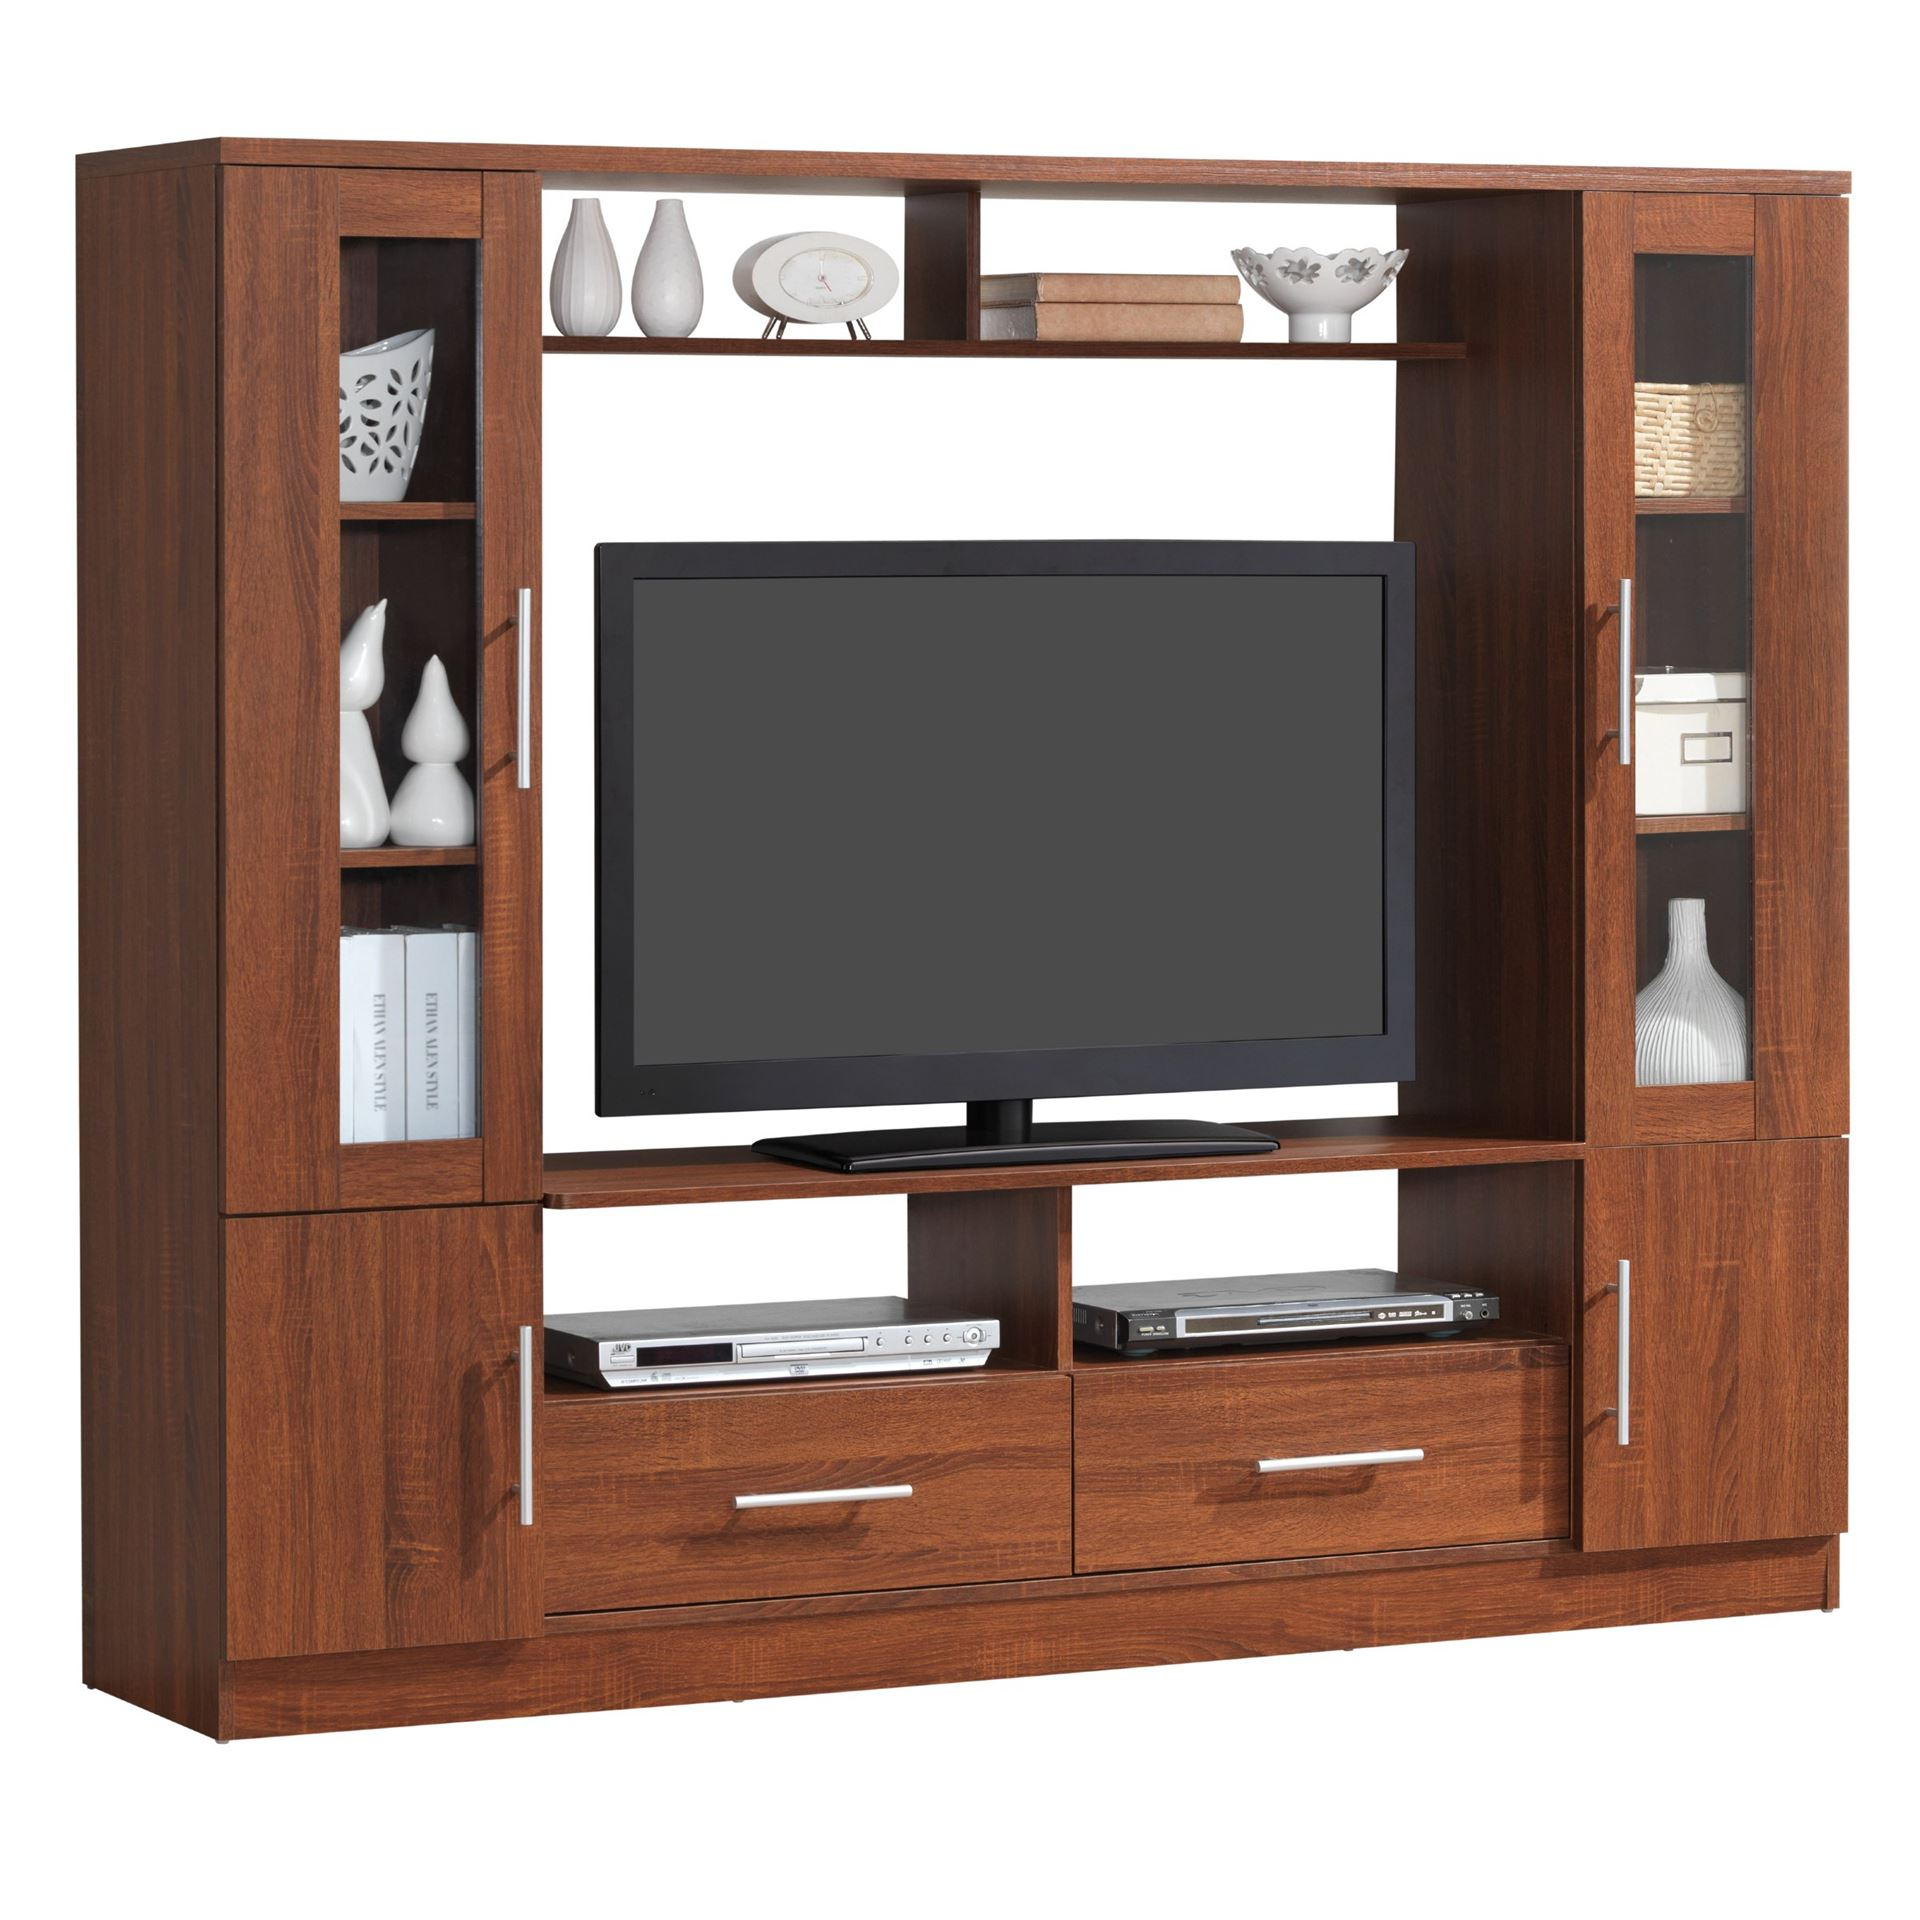 Mid Century Modern Tv Stand Diy Latest Wall Unit Designs Cabinet For Pertaining To Newest Wooden Tv Stands And Cabinets (View 7 of 20)